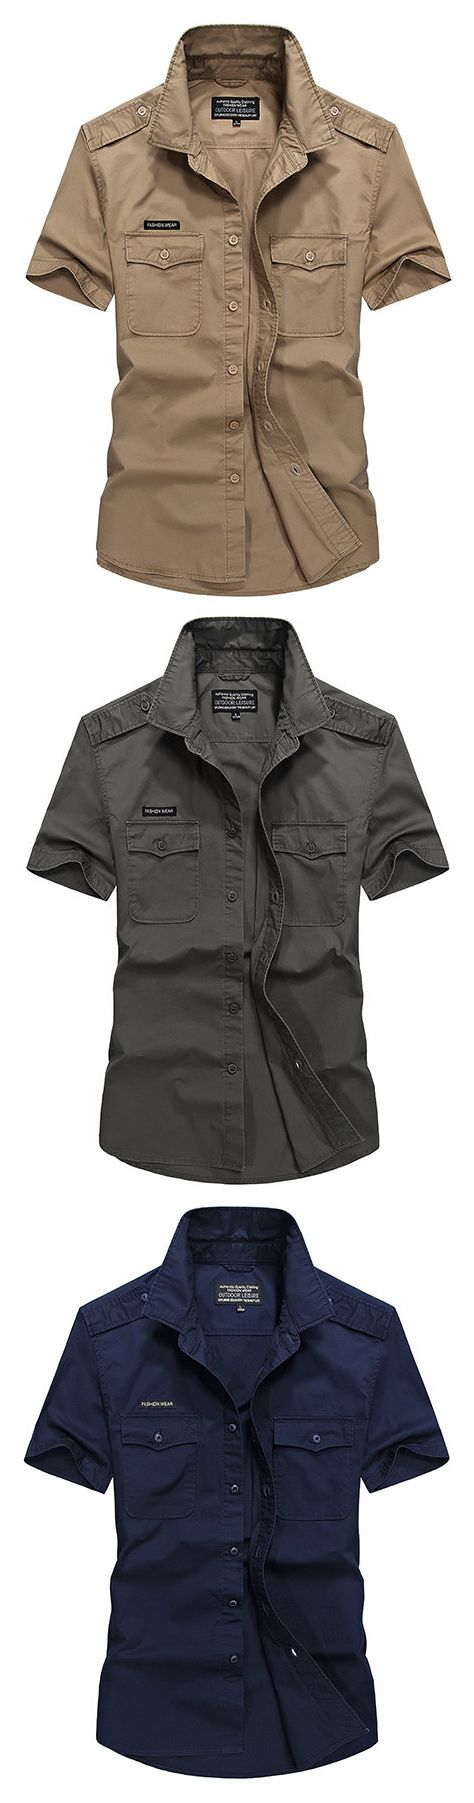 AFSJEEEP Cotton Casual Loose Breathable Chest Pockets Short Sleeve Dress Shirts for Men